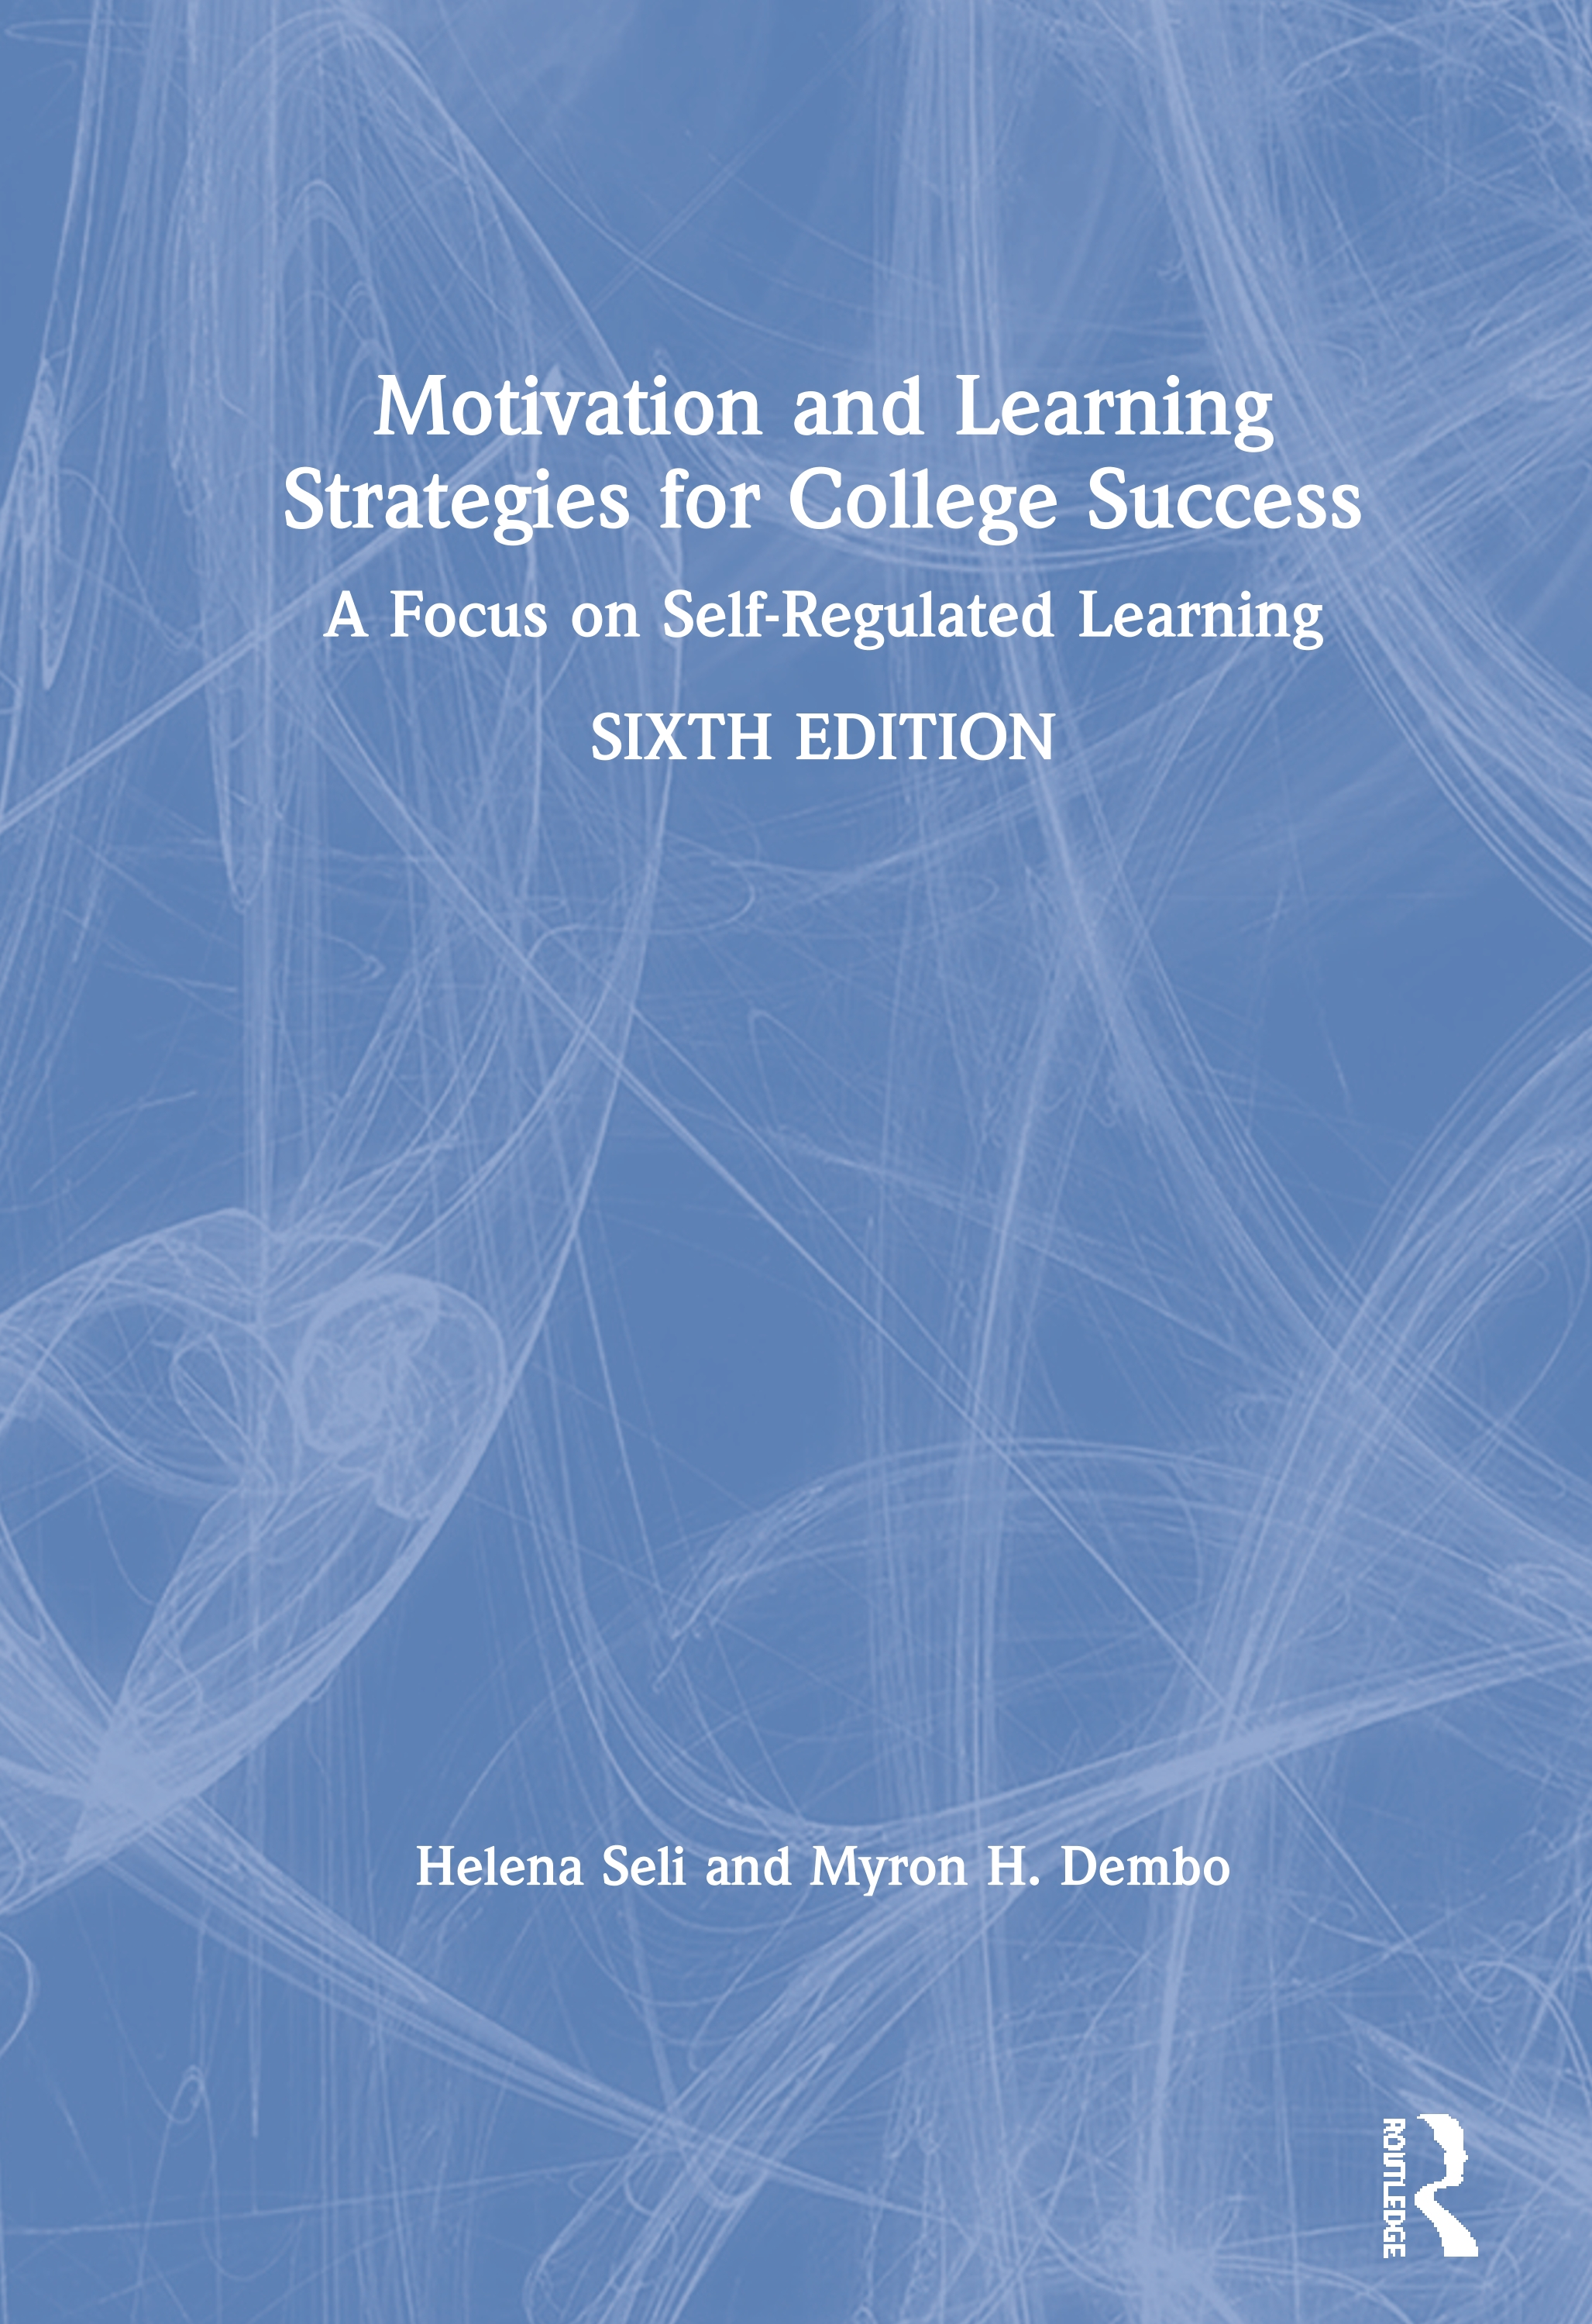 Motivation and Learning Strategies for College Success: A Focus on Self-Regulated Learning book cover